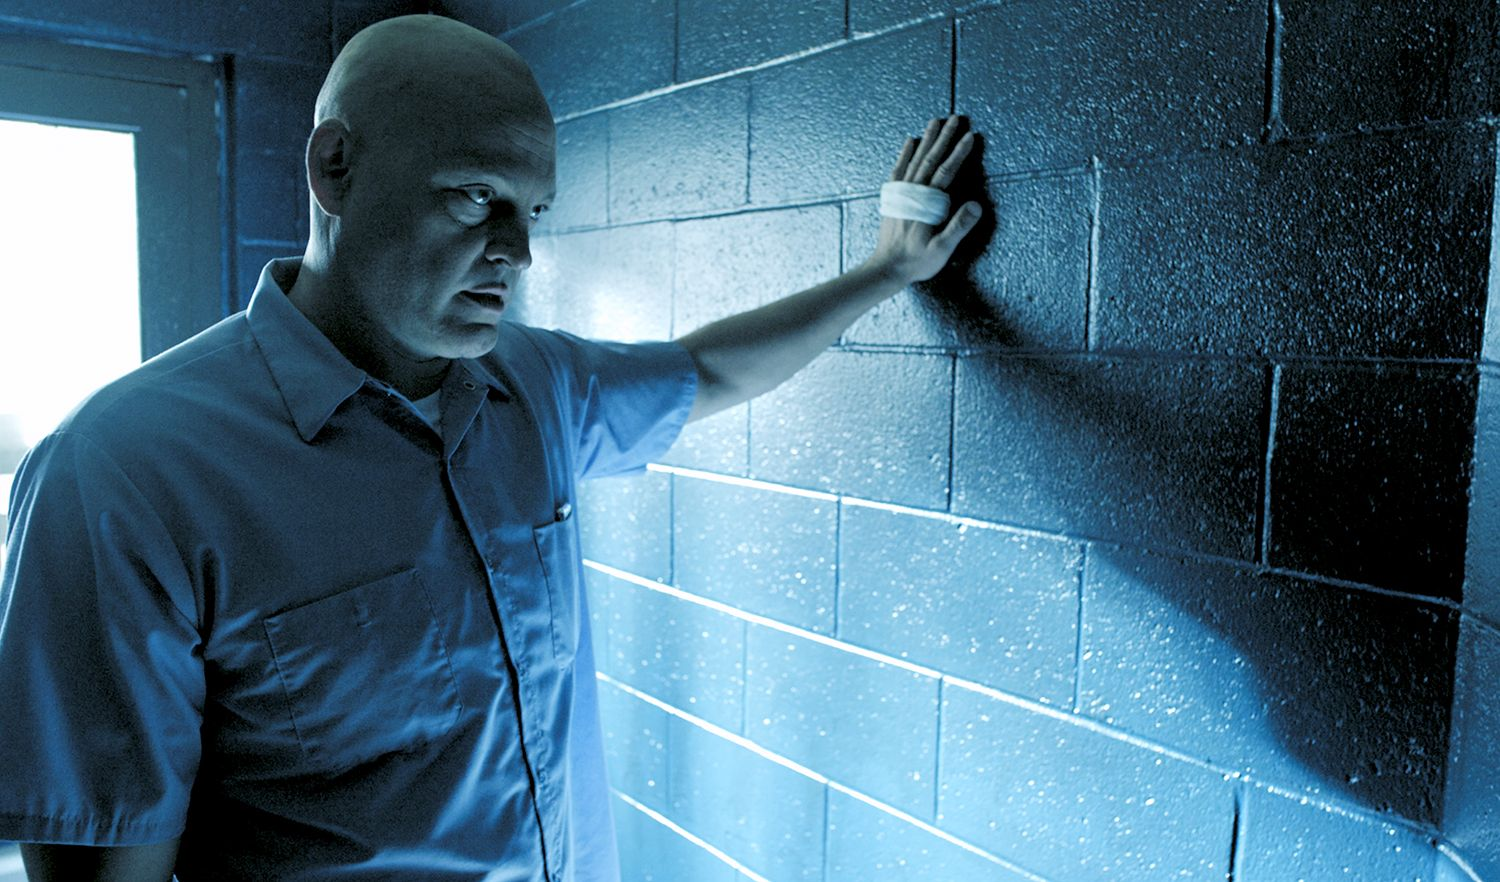 actor in Brawl in Cell Block 99